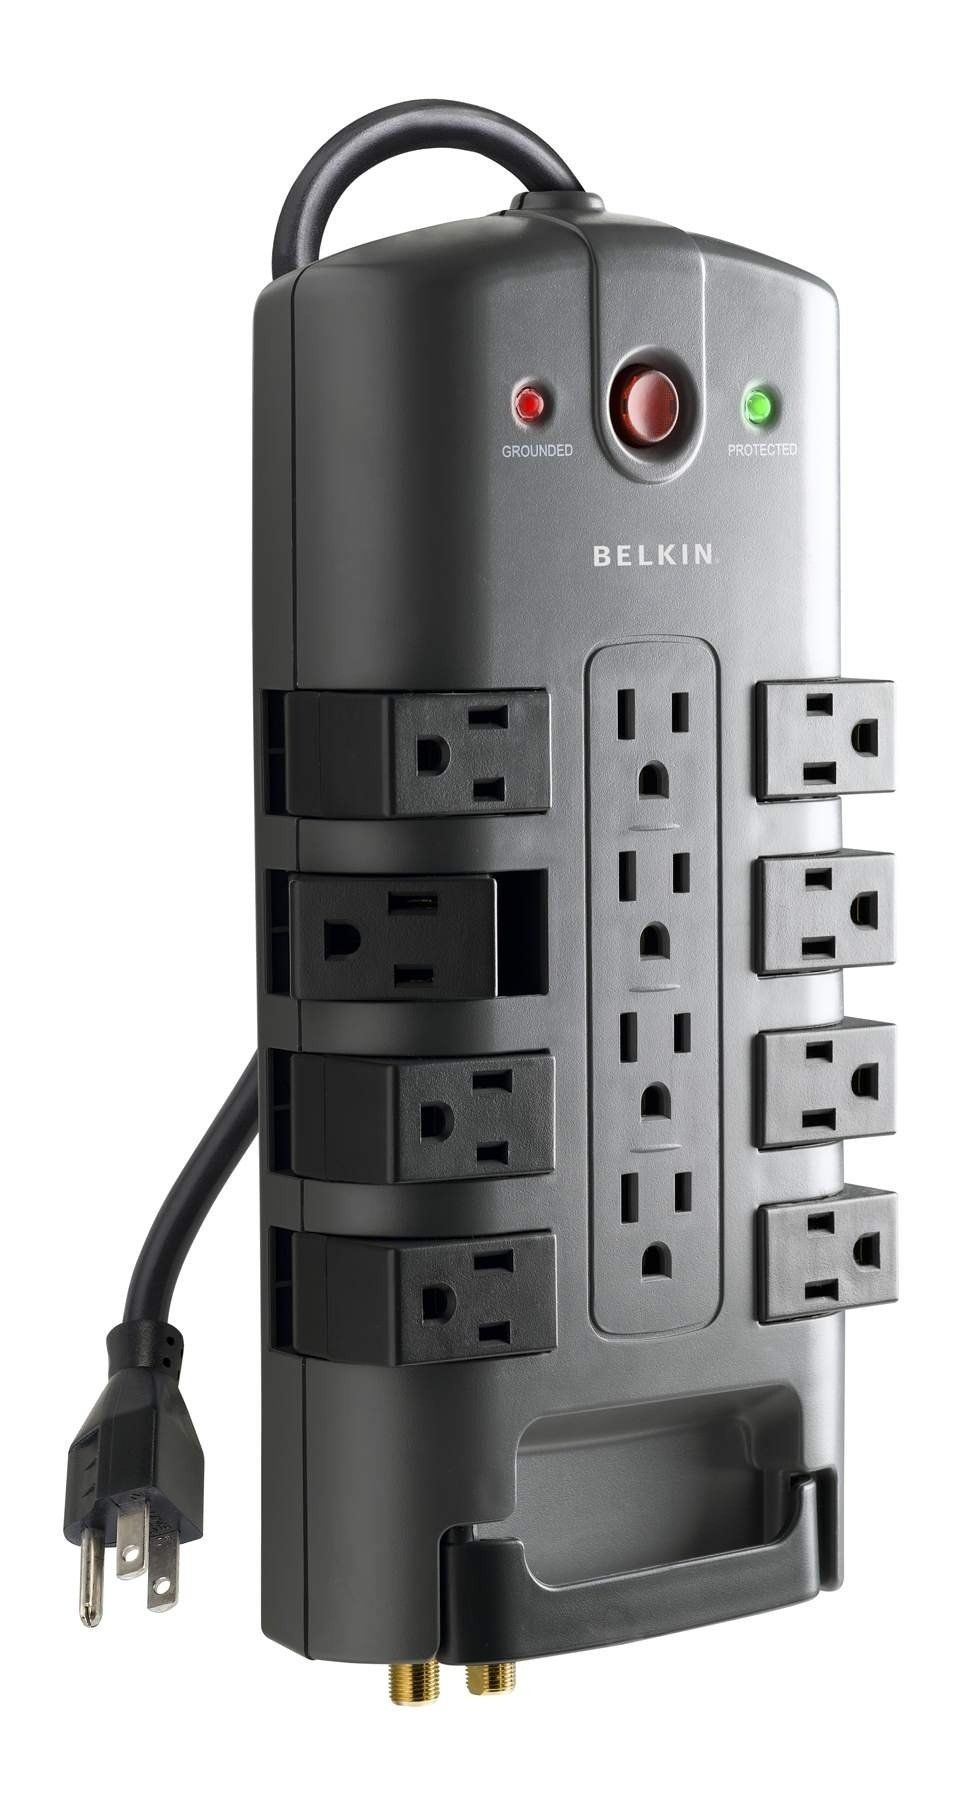 Belkin 12-Outlet Pivot-Plug Power Strip Surge Protector w/ 8ft Cord - Ideal for Computers, Home Theatre, Appliances, Office Equipment and more (4,320 Joules) by Belkin